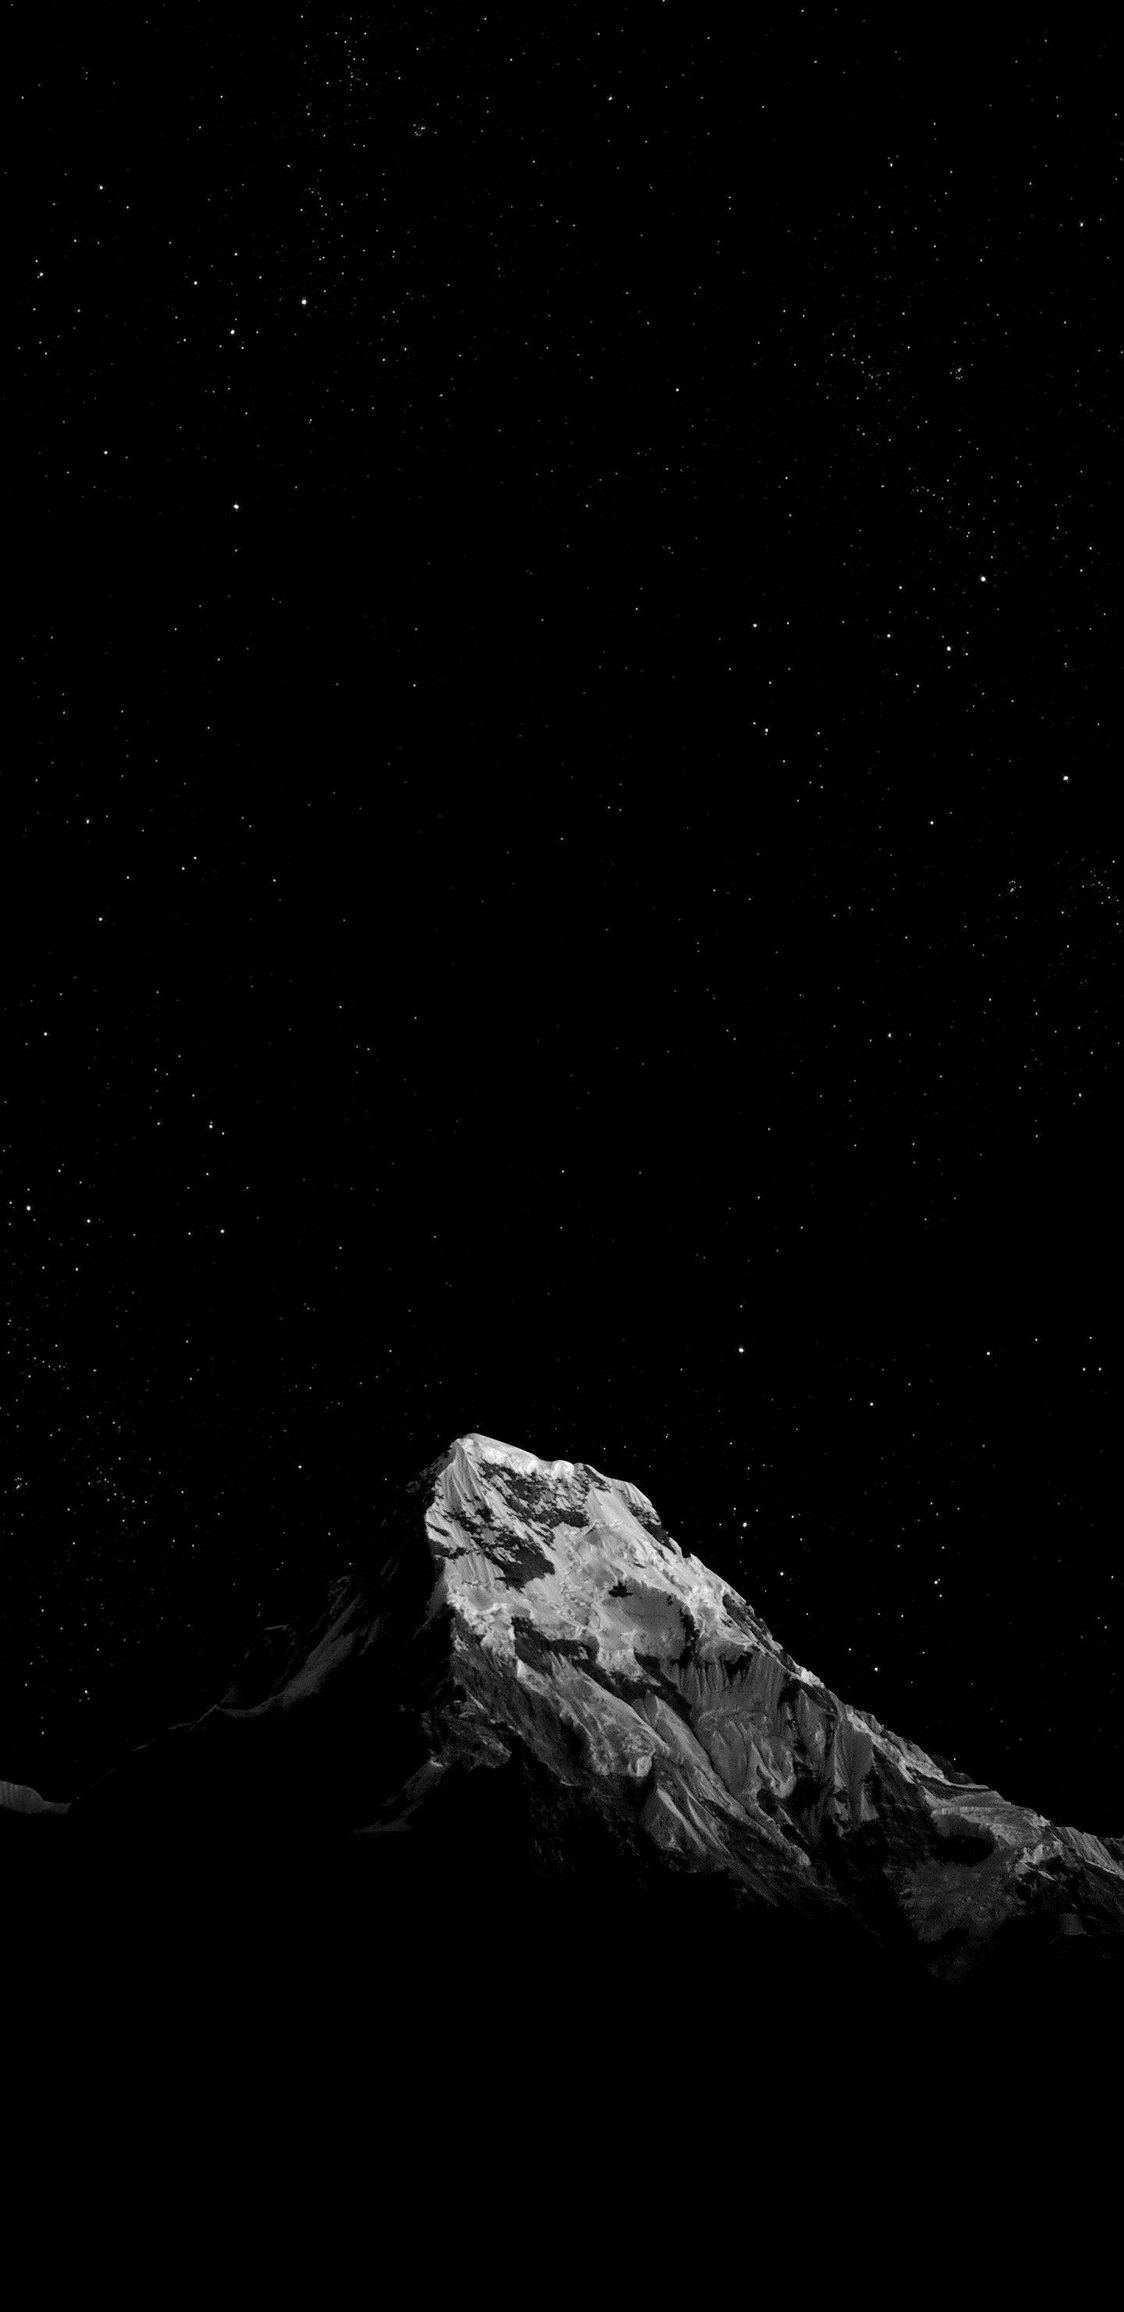 True Black Oled Wallpapers Black Wallpaper Iphone Black Wallpaper Black Aesthetic Wallpaper